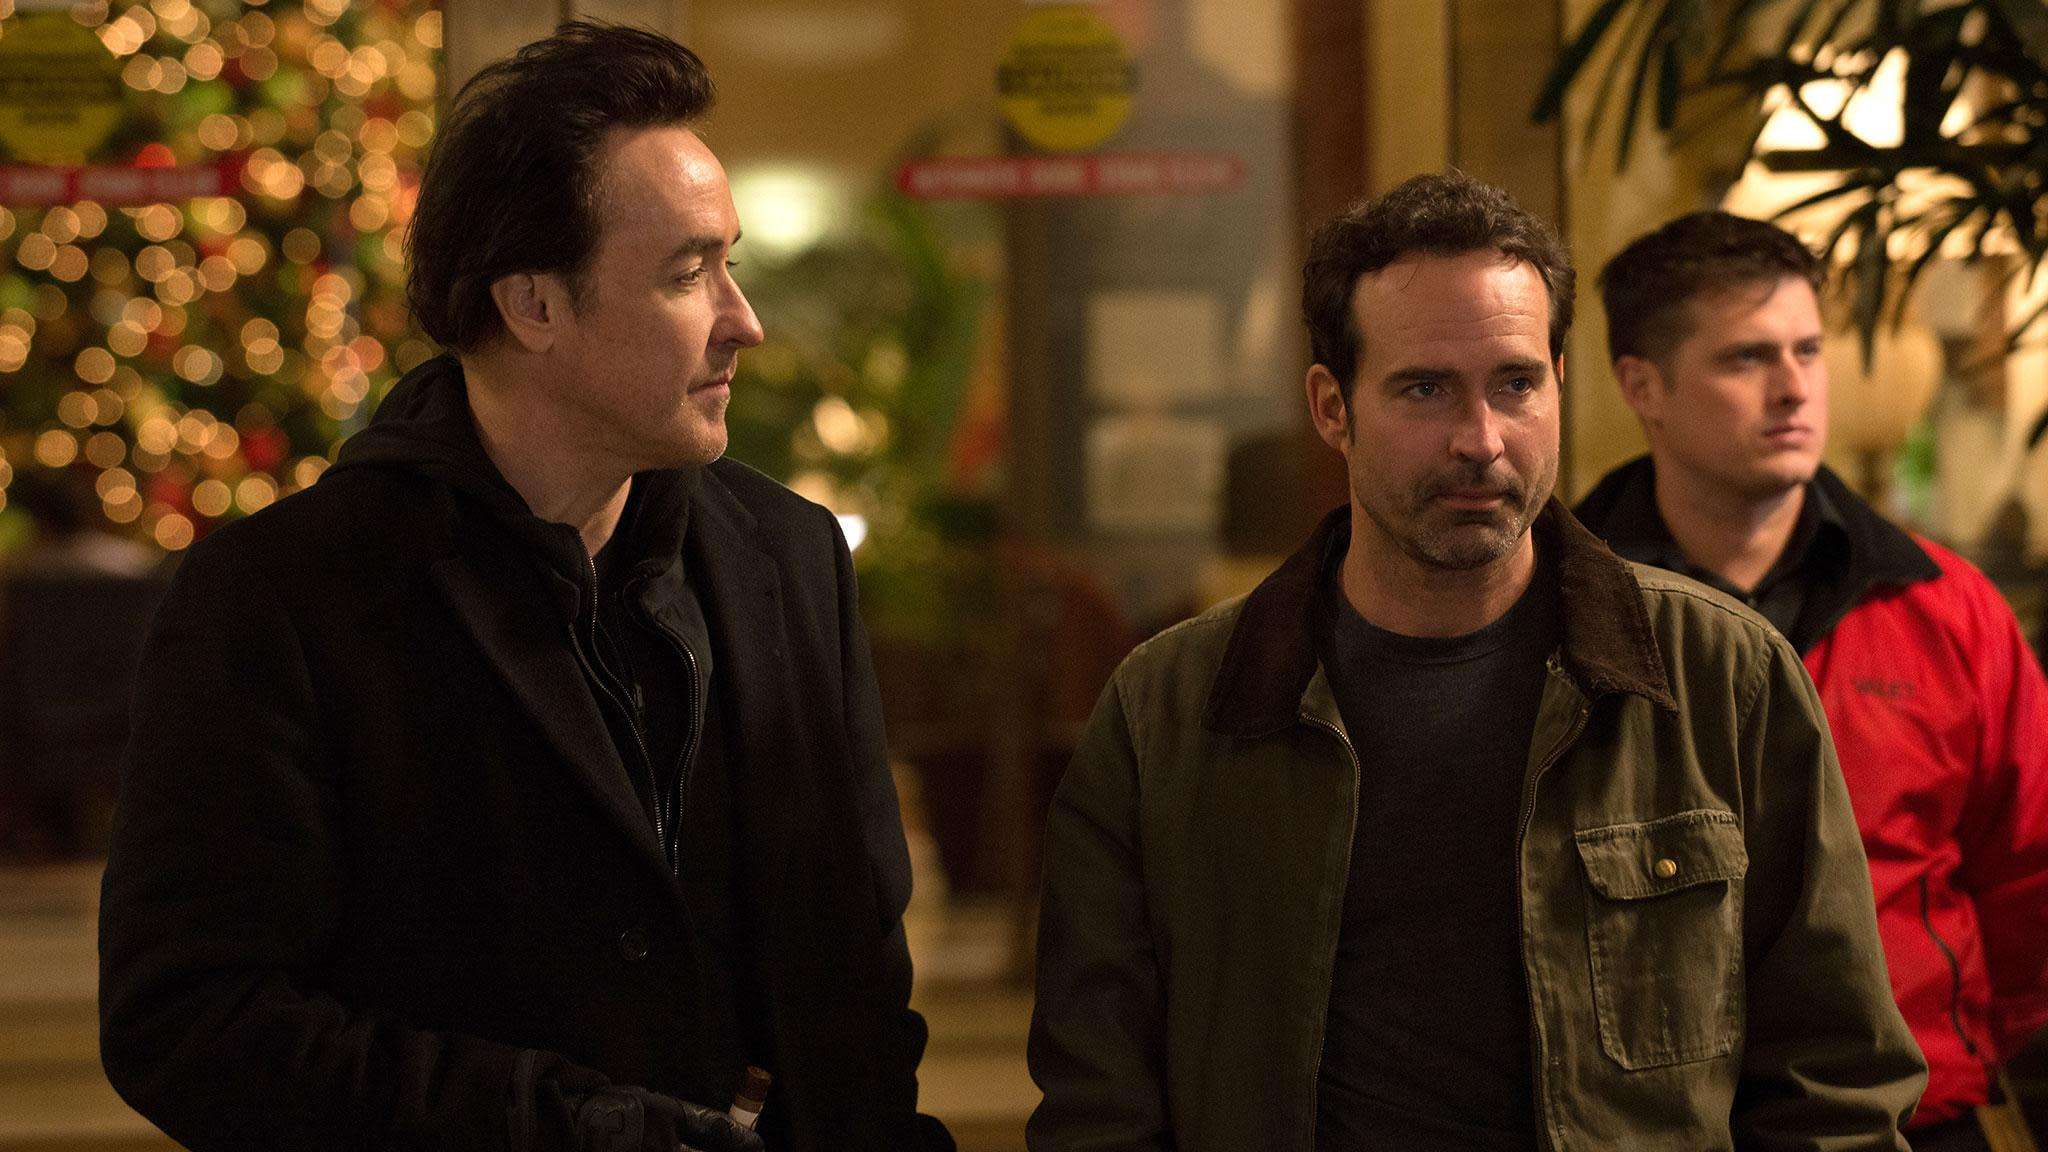 John Cusack and Jason Patric in 'The Prince'